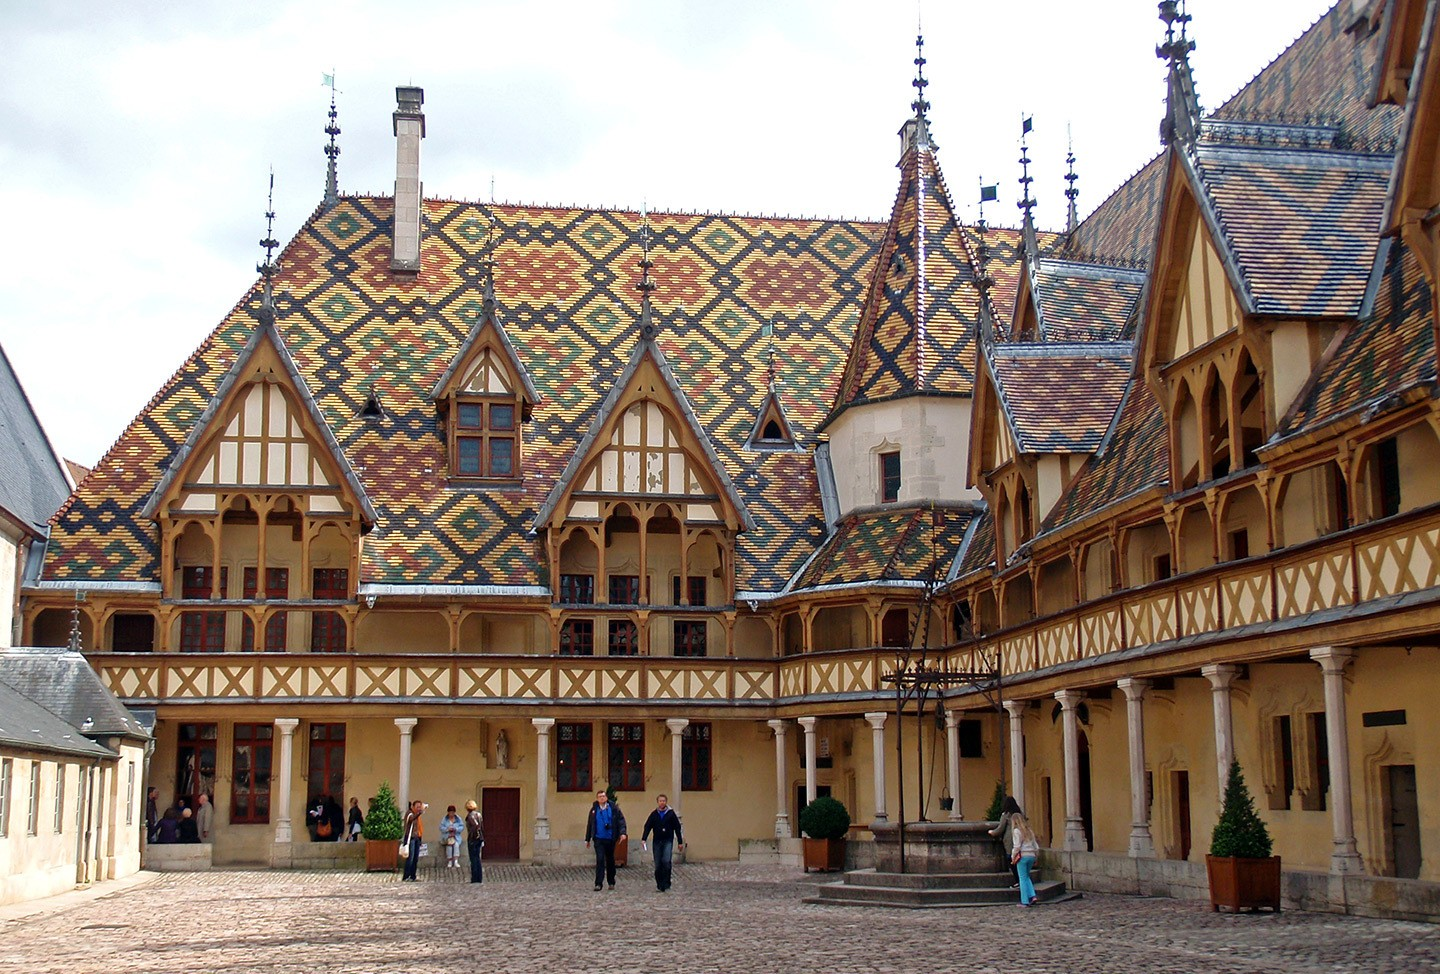 The Hôtel Dieu des Hospices de Beaune, Beaune in Burgundy